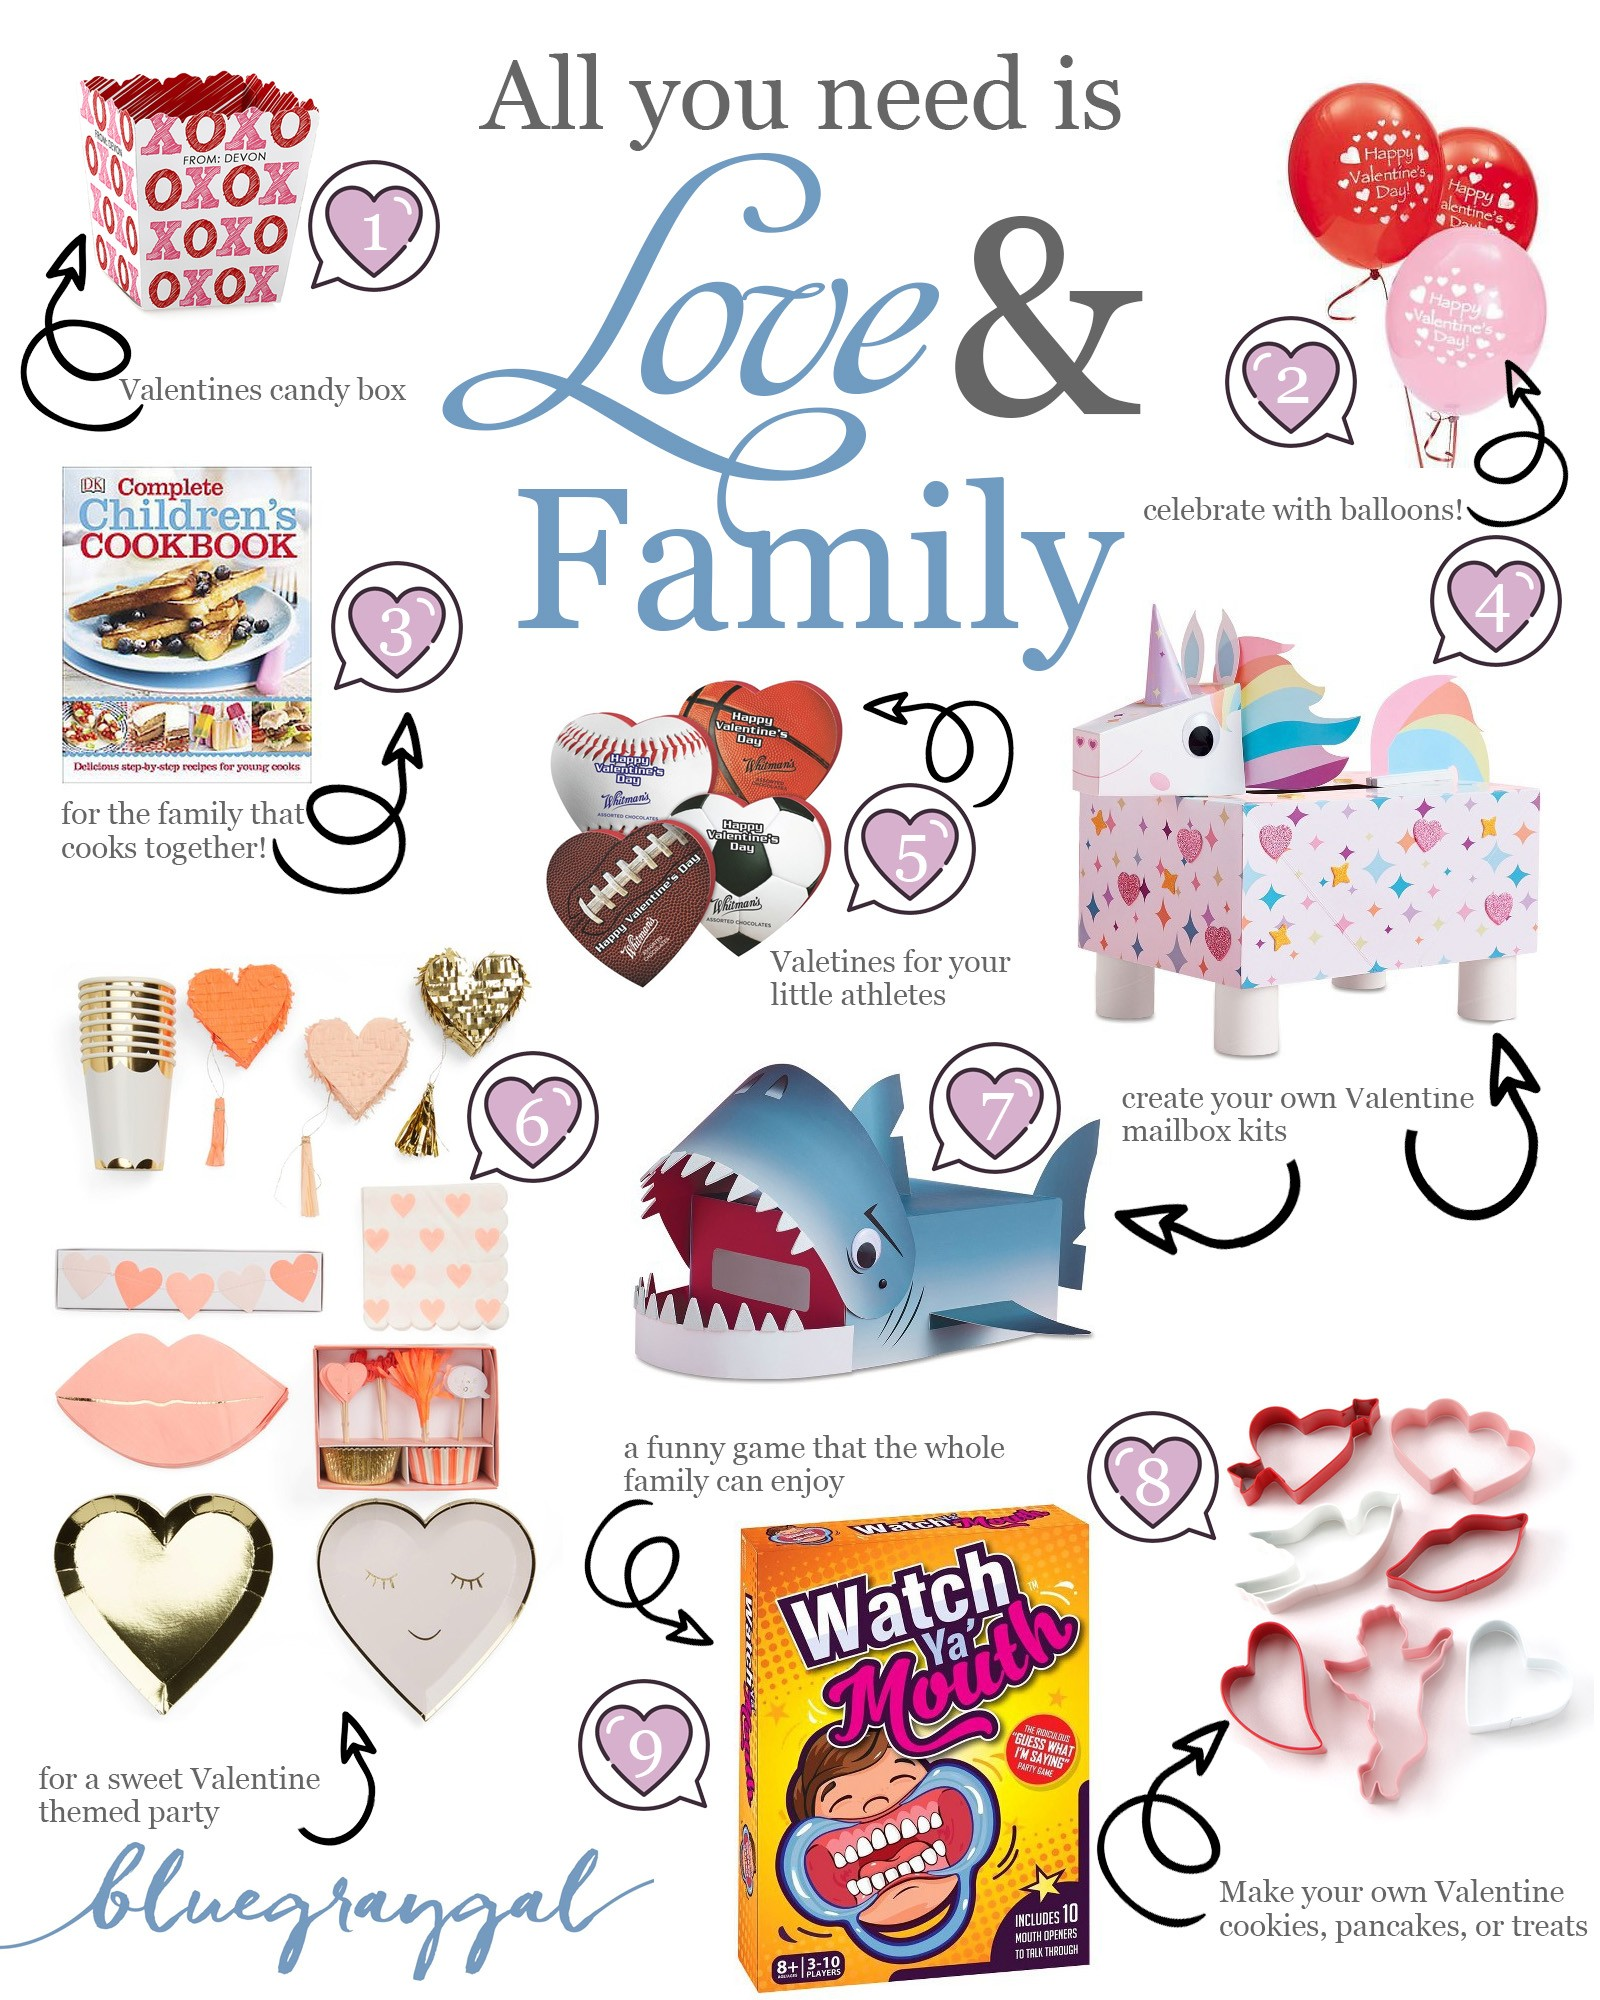 9 top valentines kids ideas for whole family! | bluegraygal